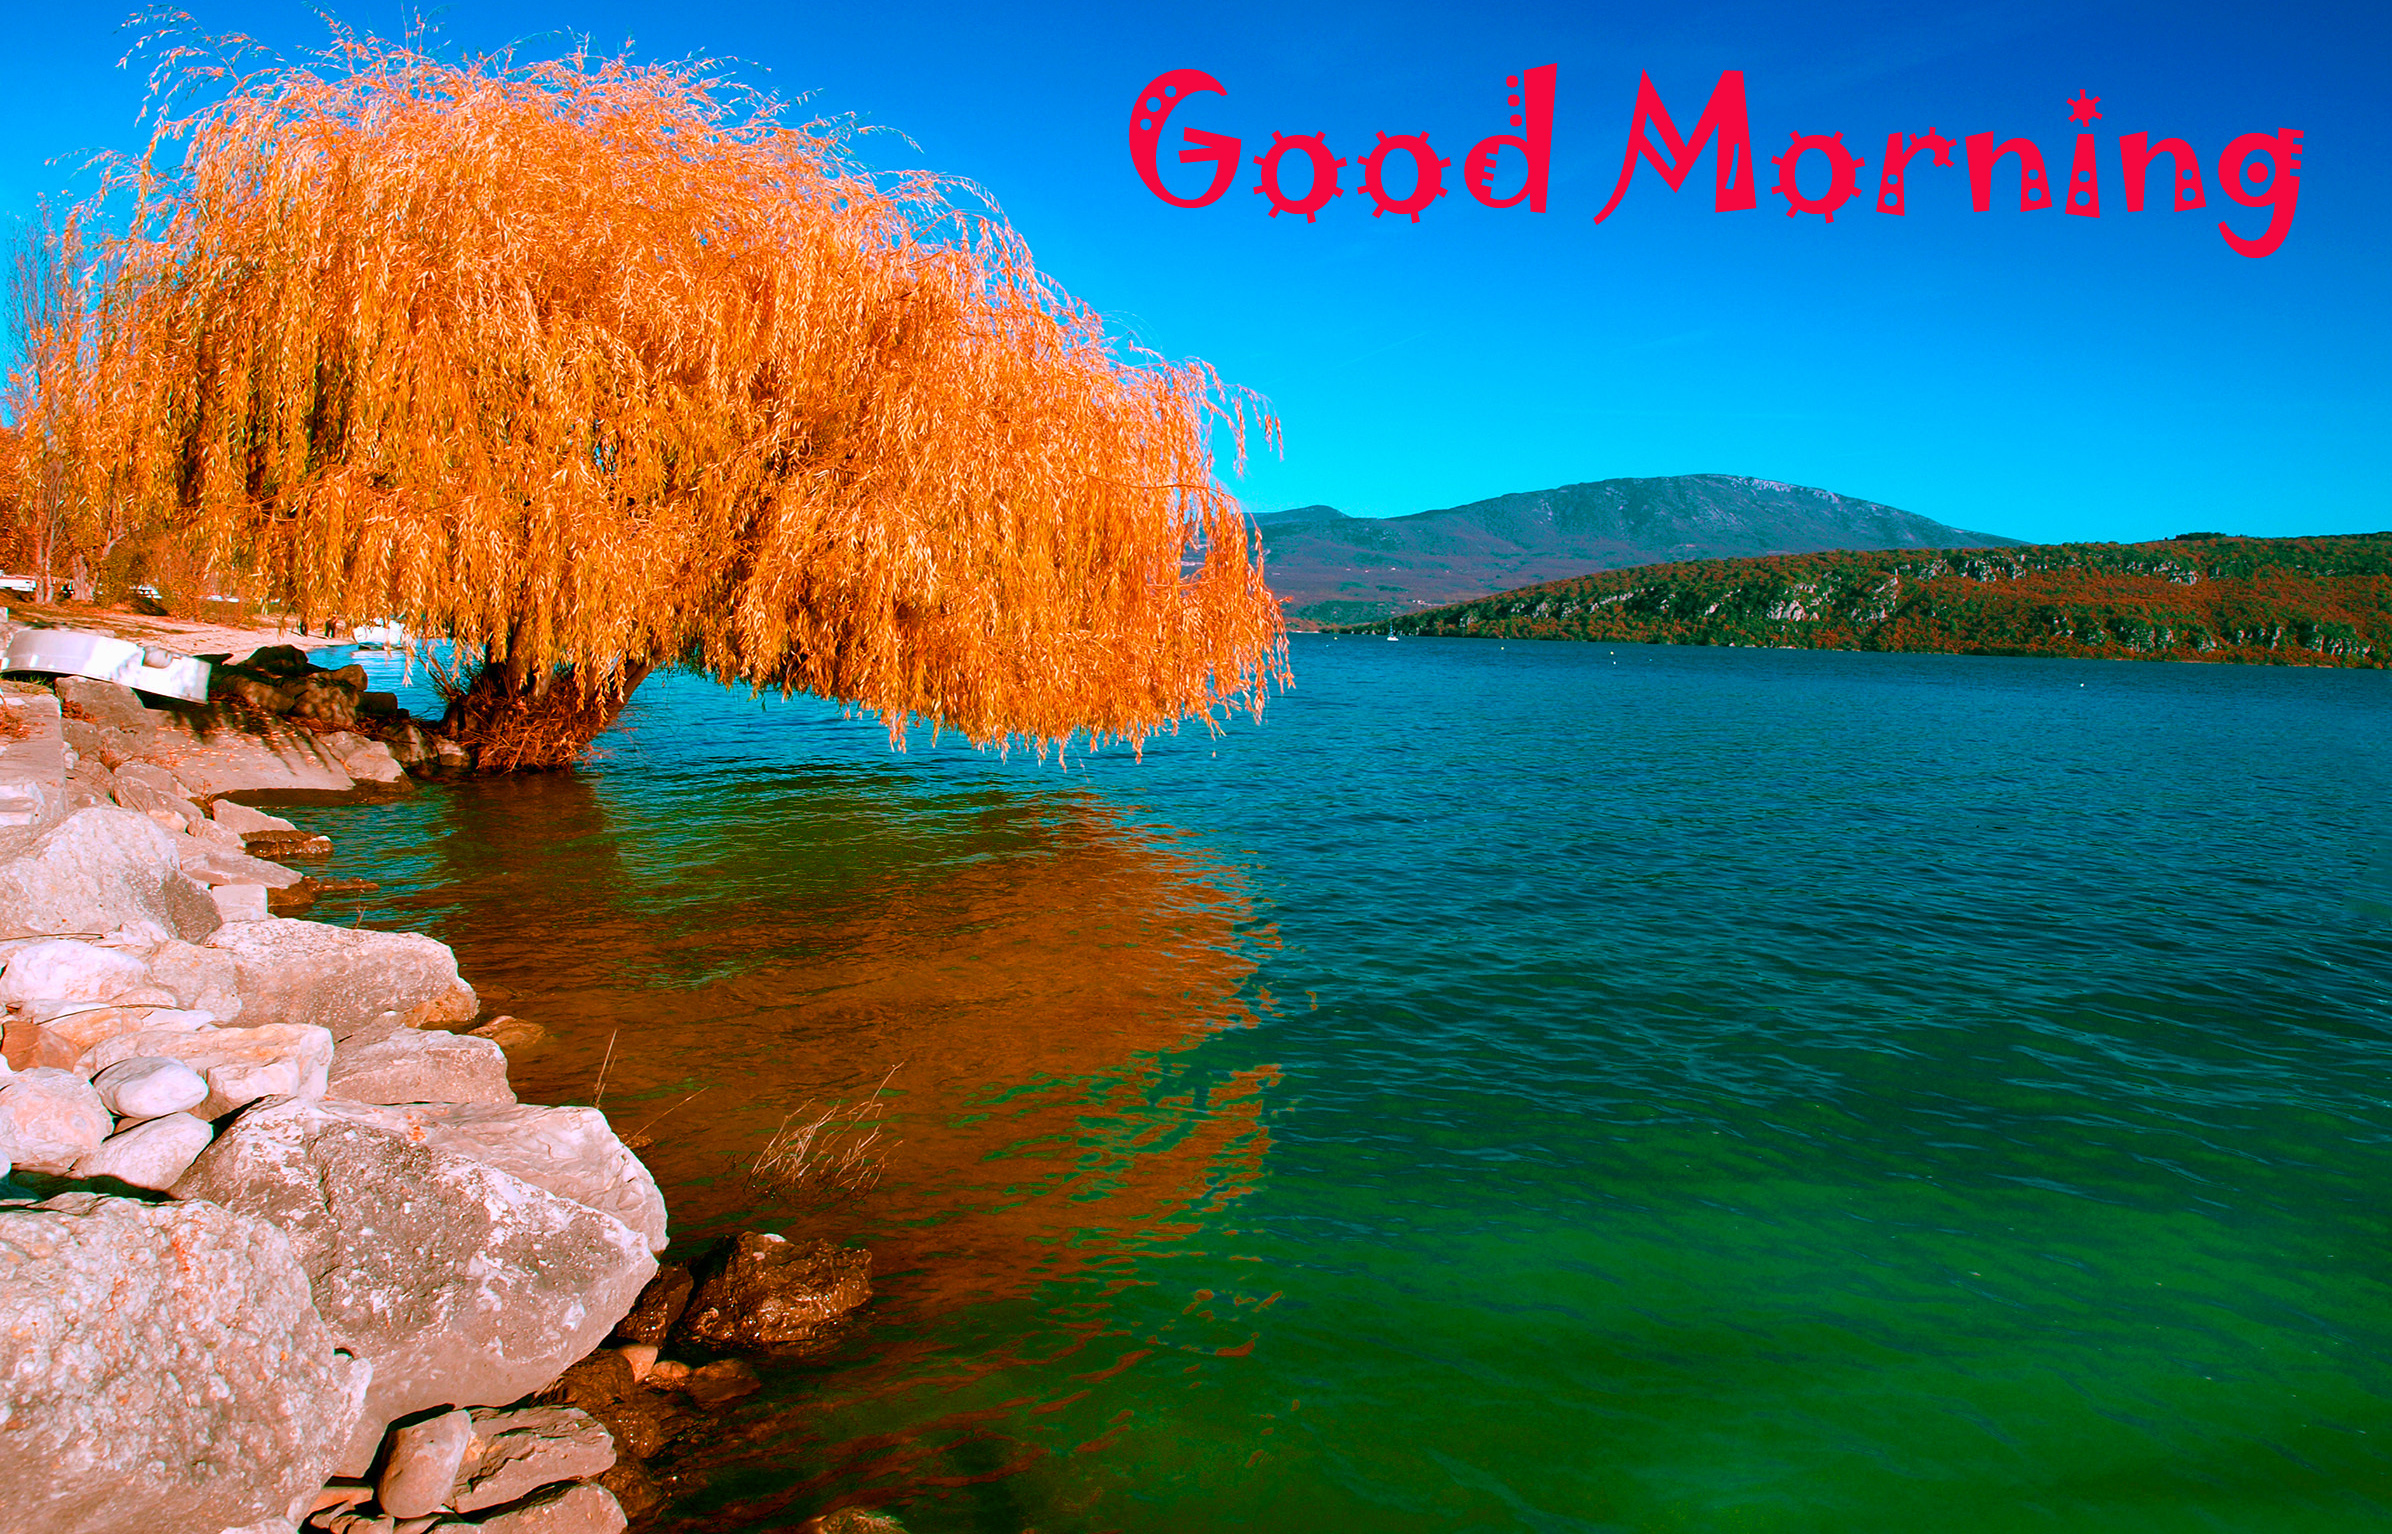 Good Morning Images Wallpaper Pics Download With Beautiful Beautiful Nature Good Morning 1861248 Hd Wallpaper Backgrounds Download